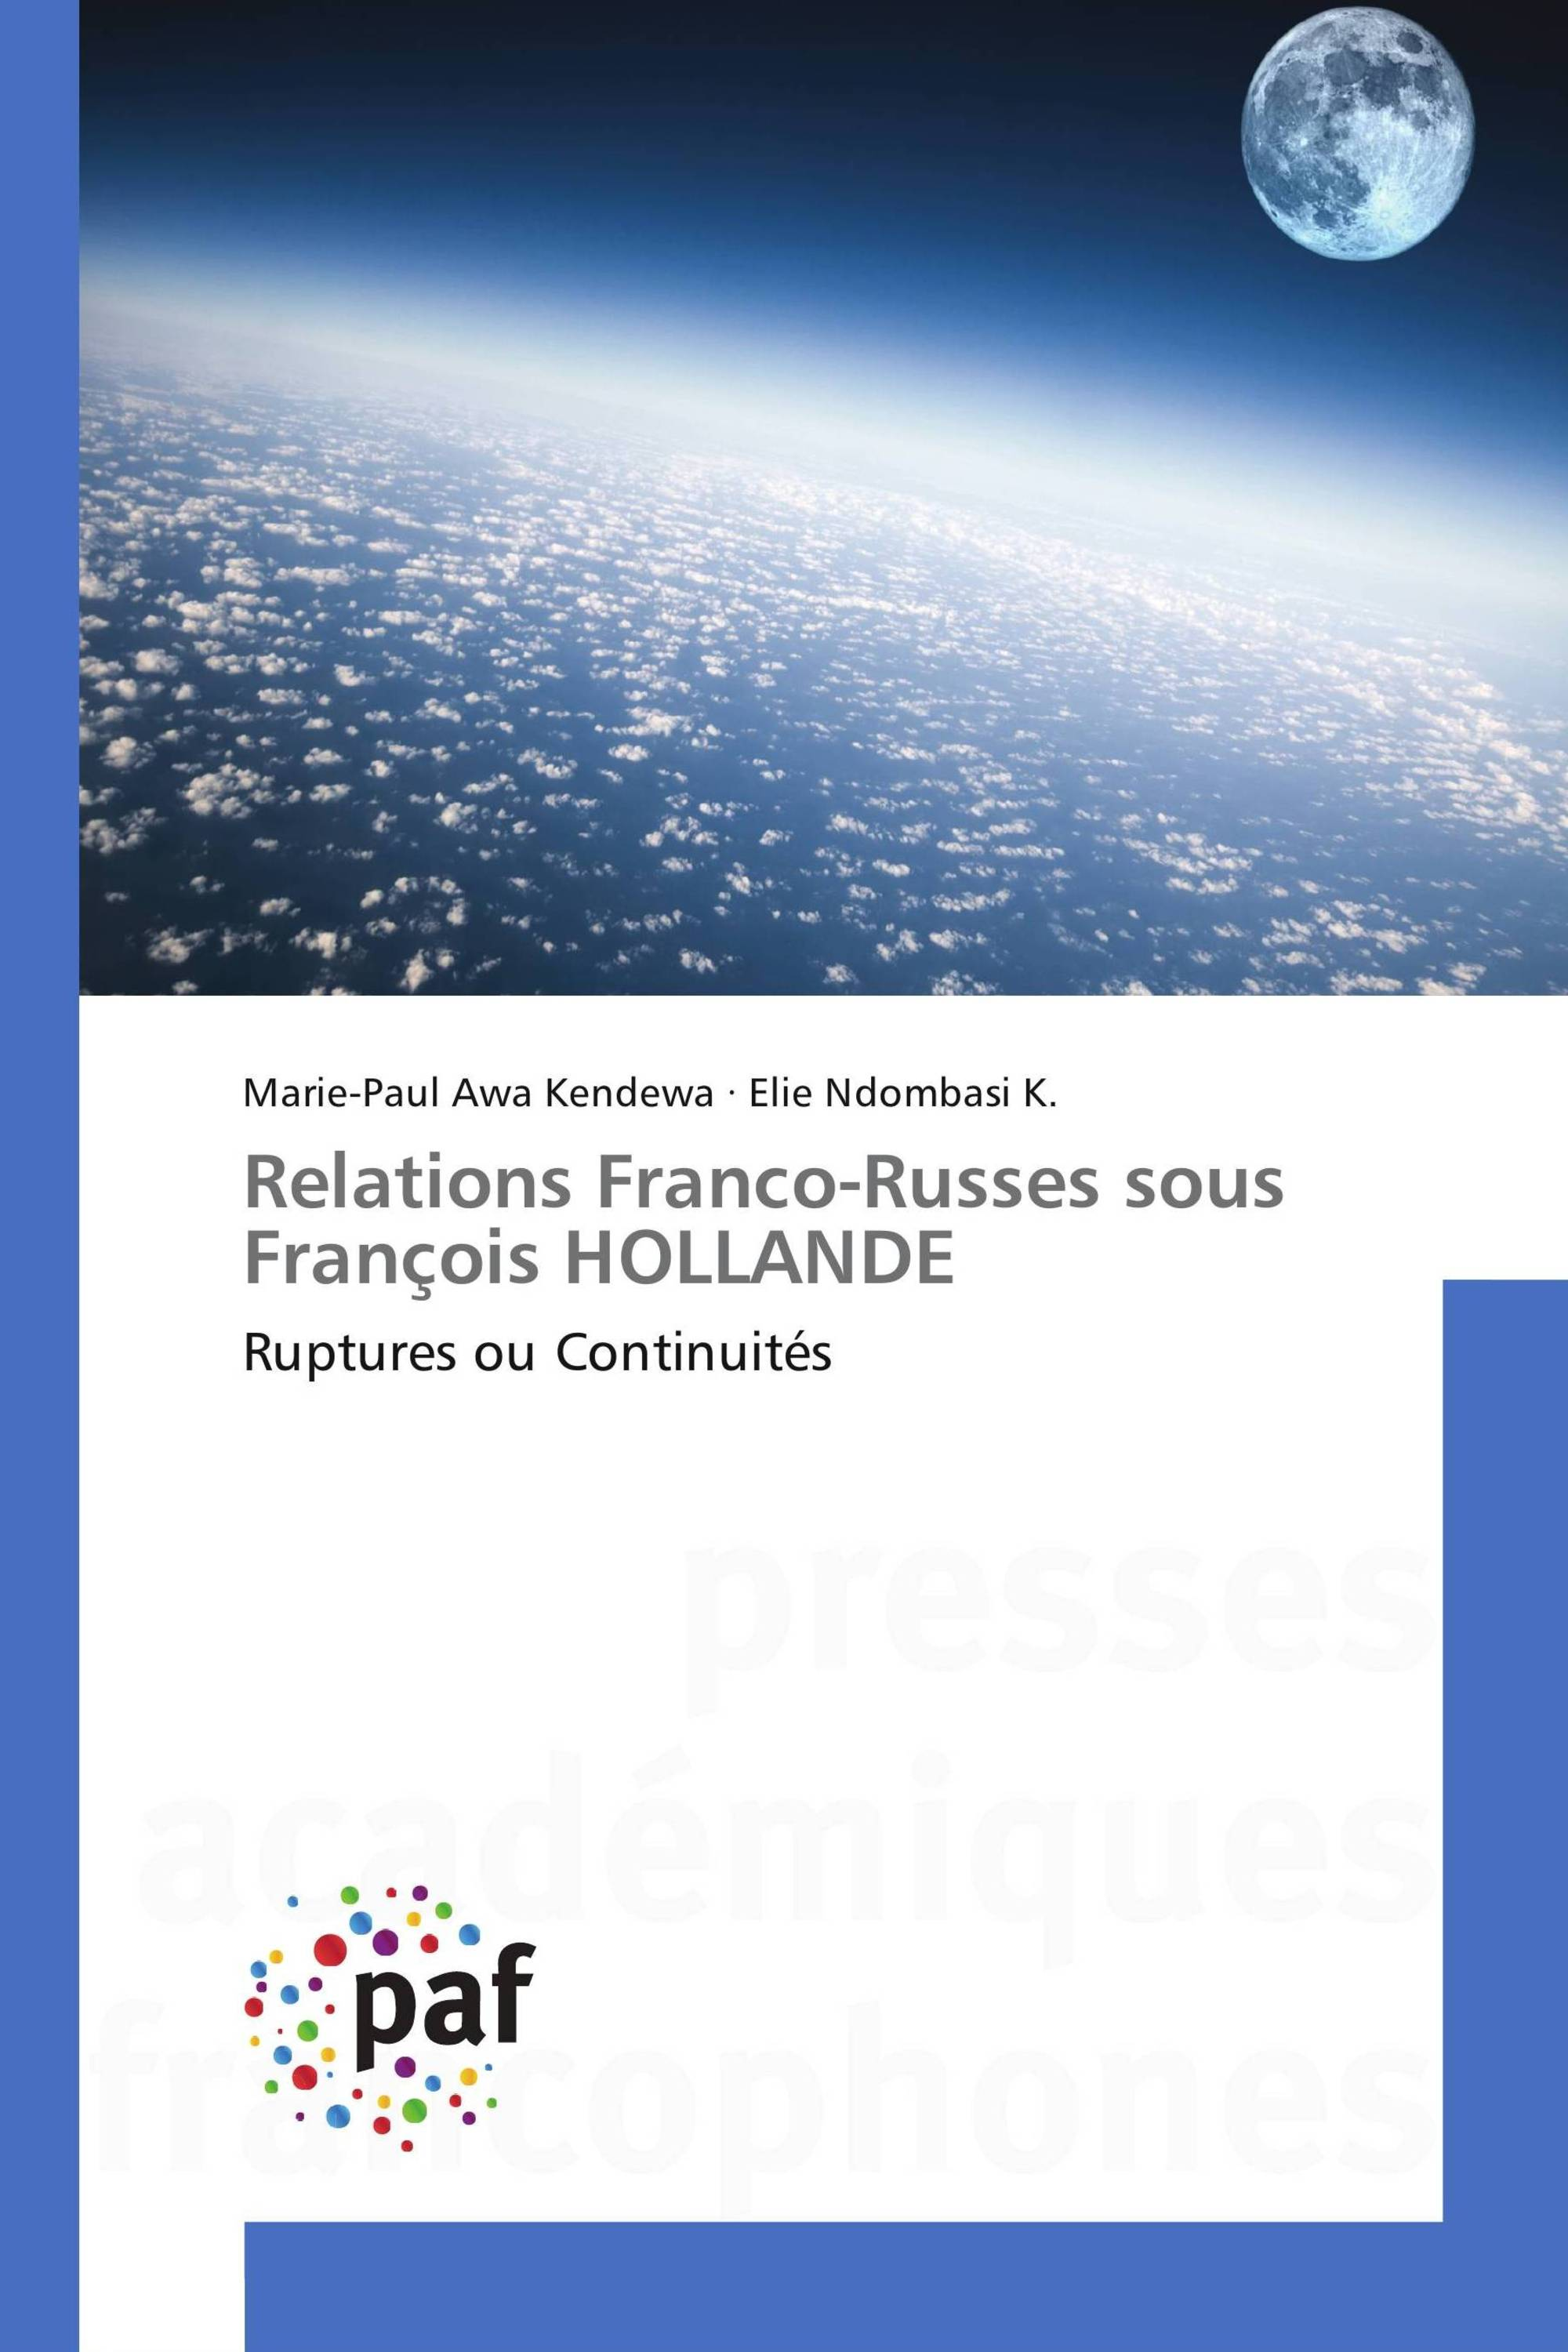 Relations Franco-Russes sous François HOLLANDE